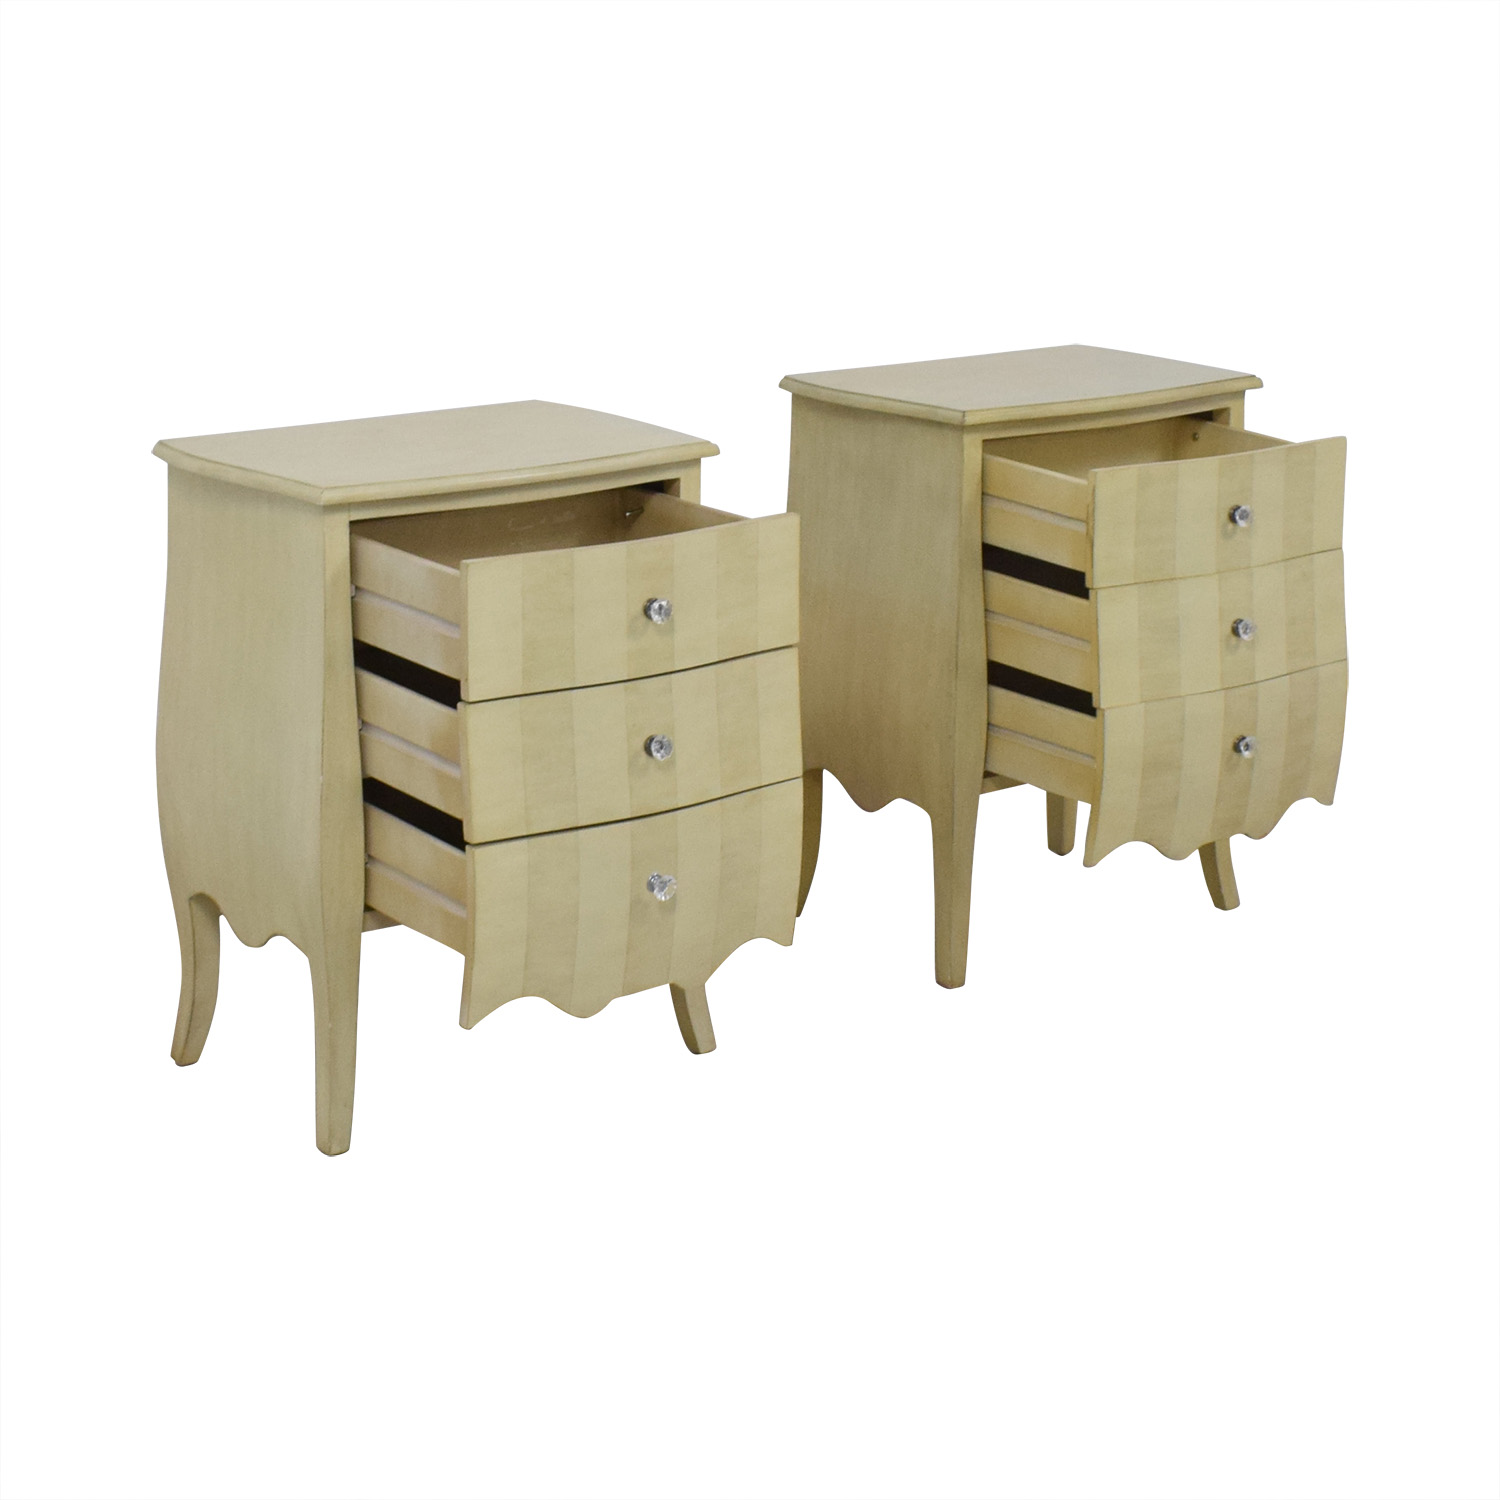 Three-Drawer Nightstands nj